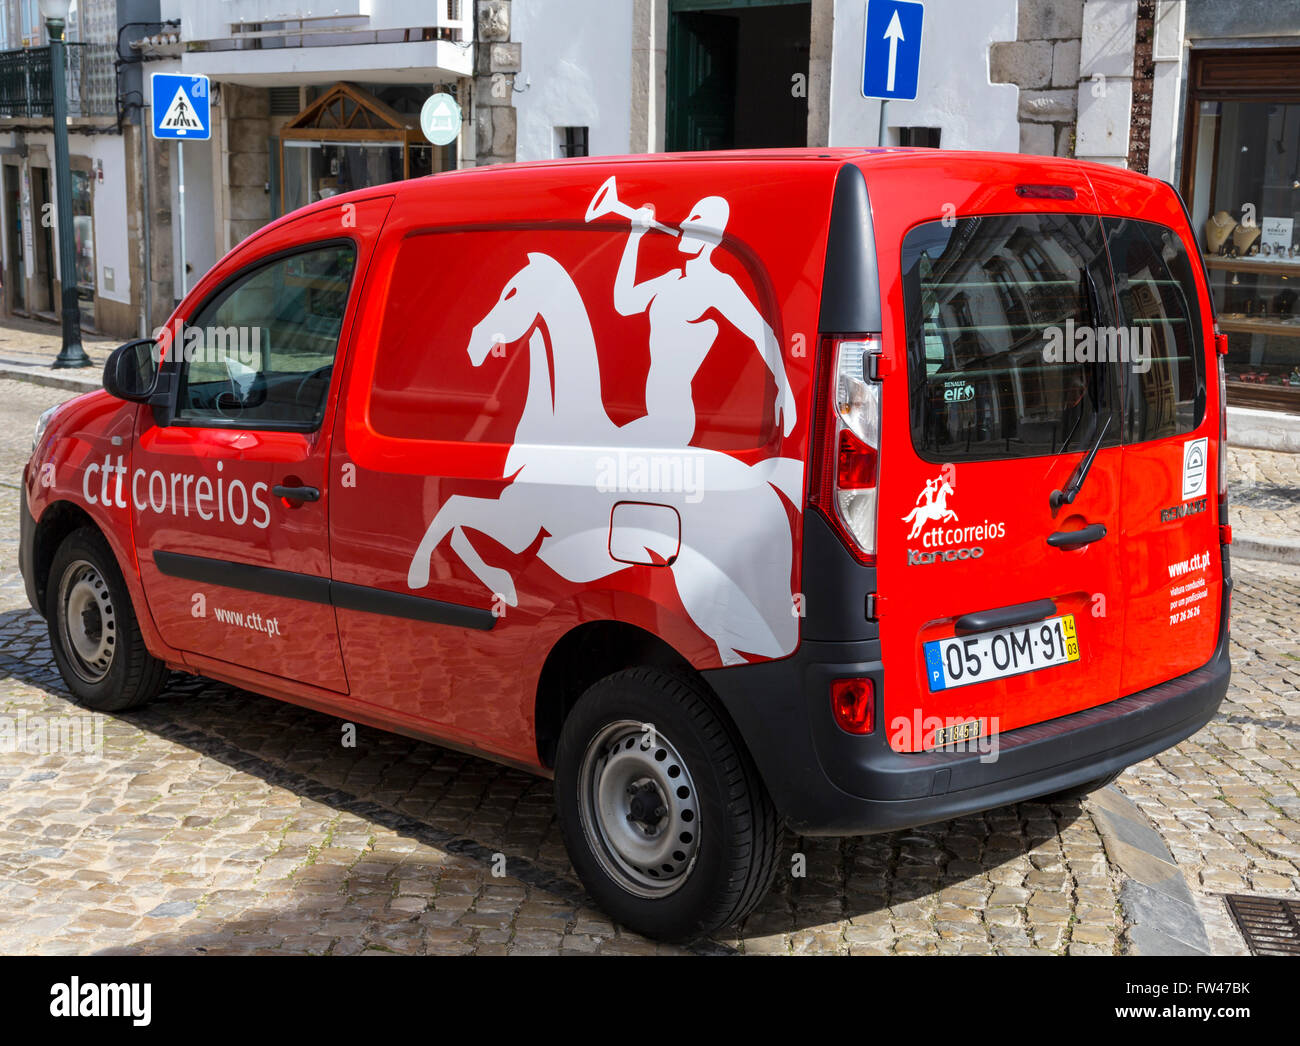 Postal Services of Portugal delivery vehicle. - Stock Image